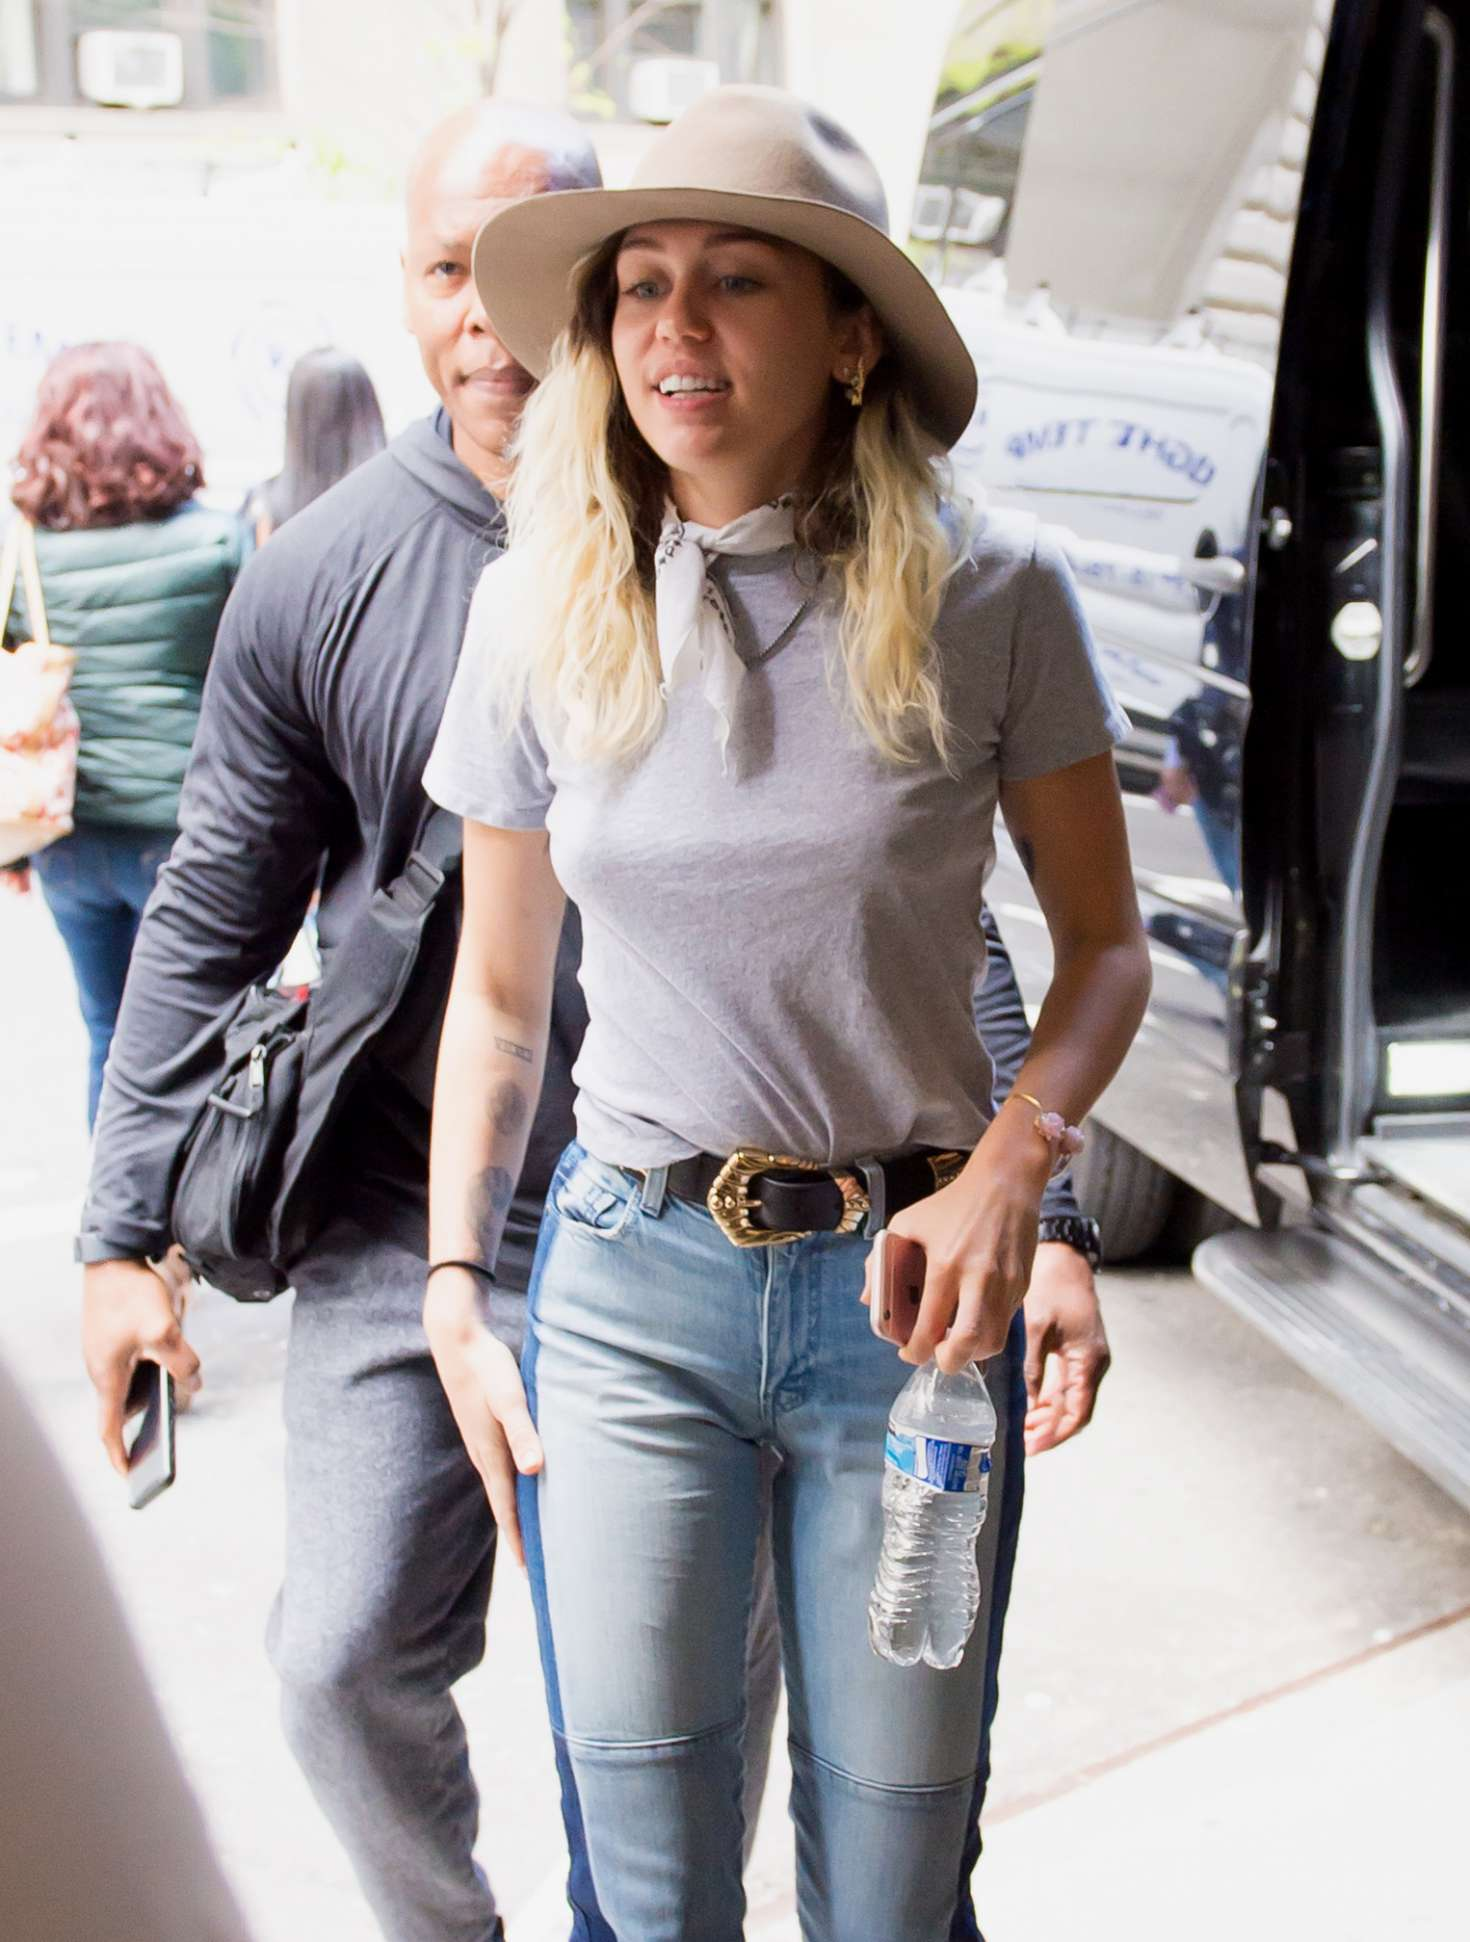 Miley Cyrus In Jeans 17 Gotceleb